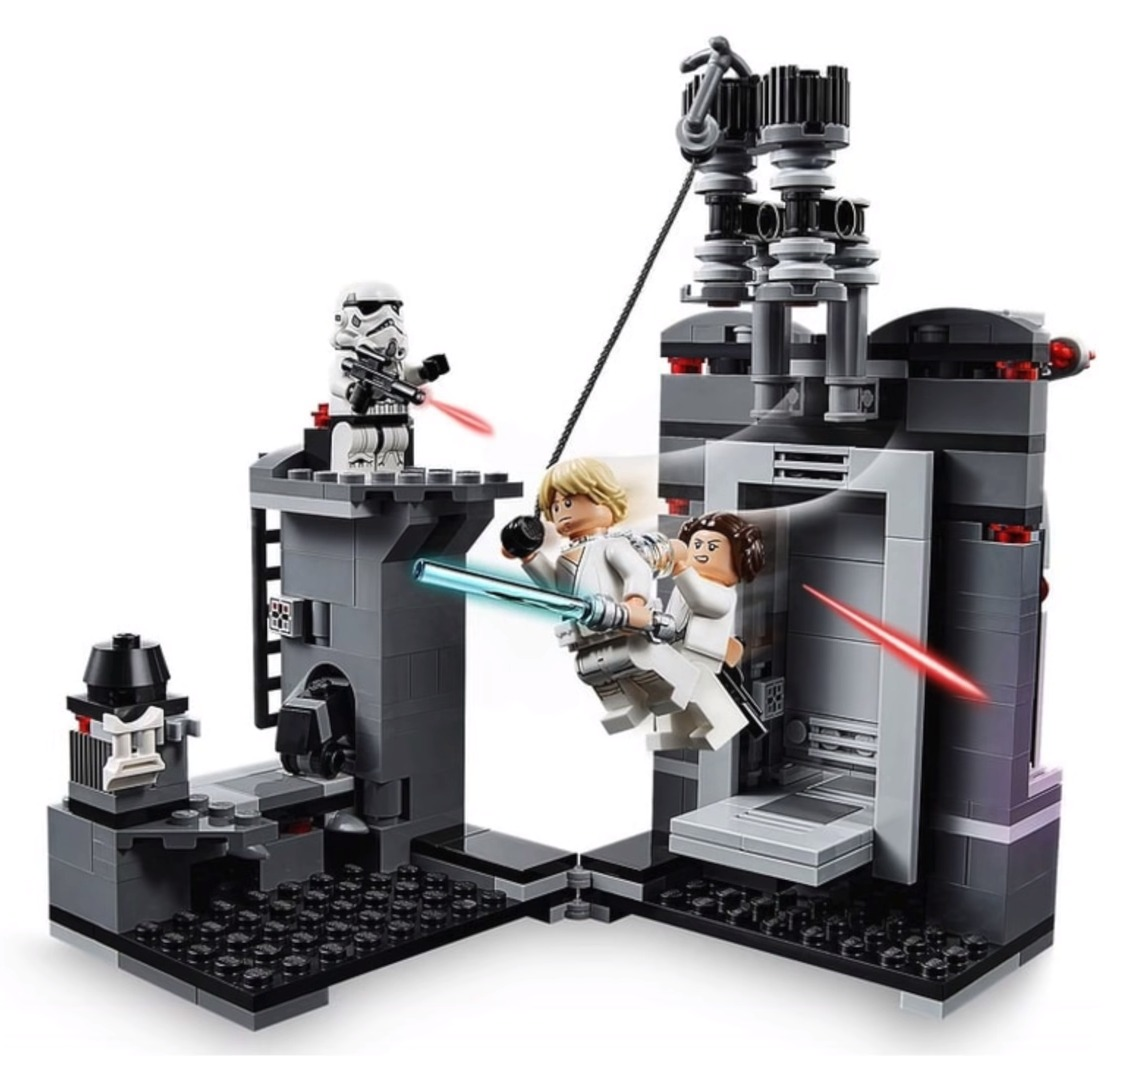 New 2019 Lego Star Wars Sets Leaked Geek Culture